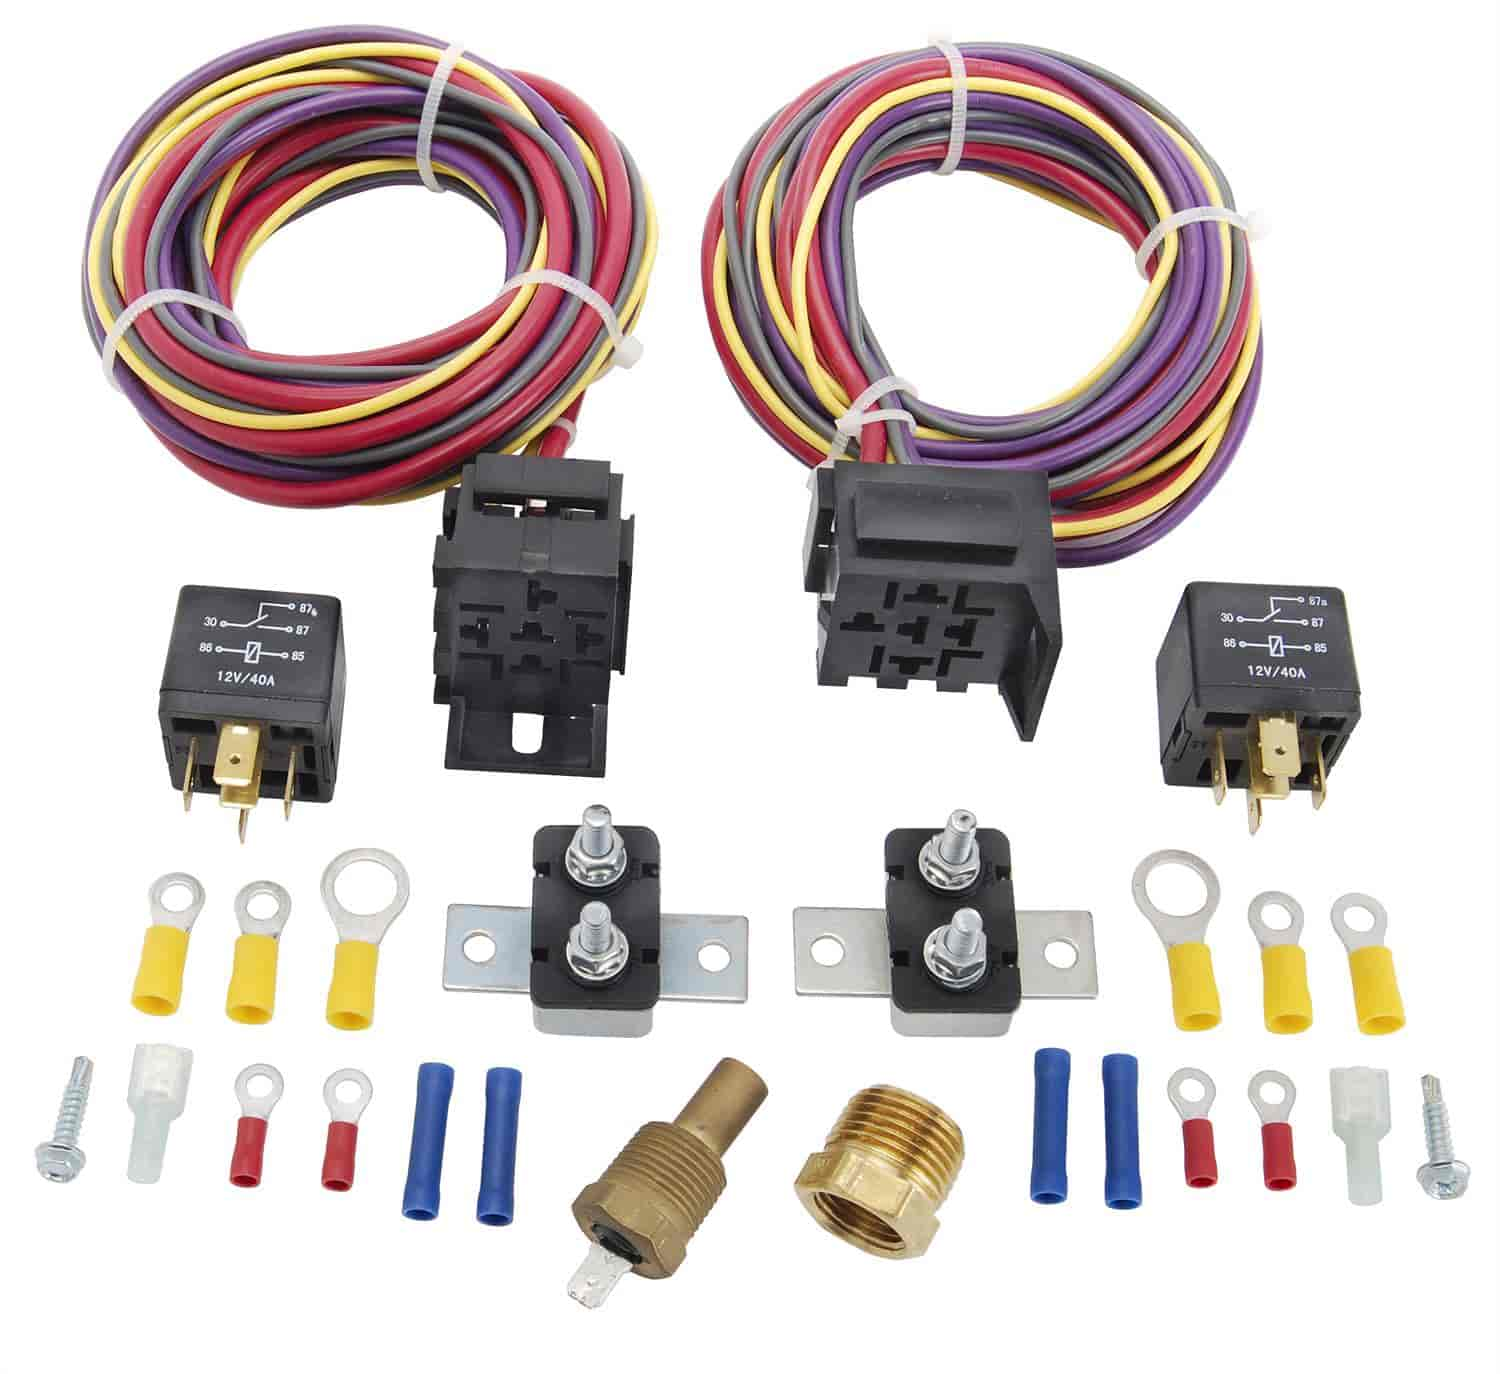 555 10570 jegs performance products 10570 dual fan wiring harness & relay Furnace Blower Fan Relay Wiring at honlapkeszites.co